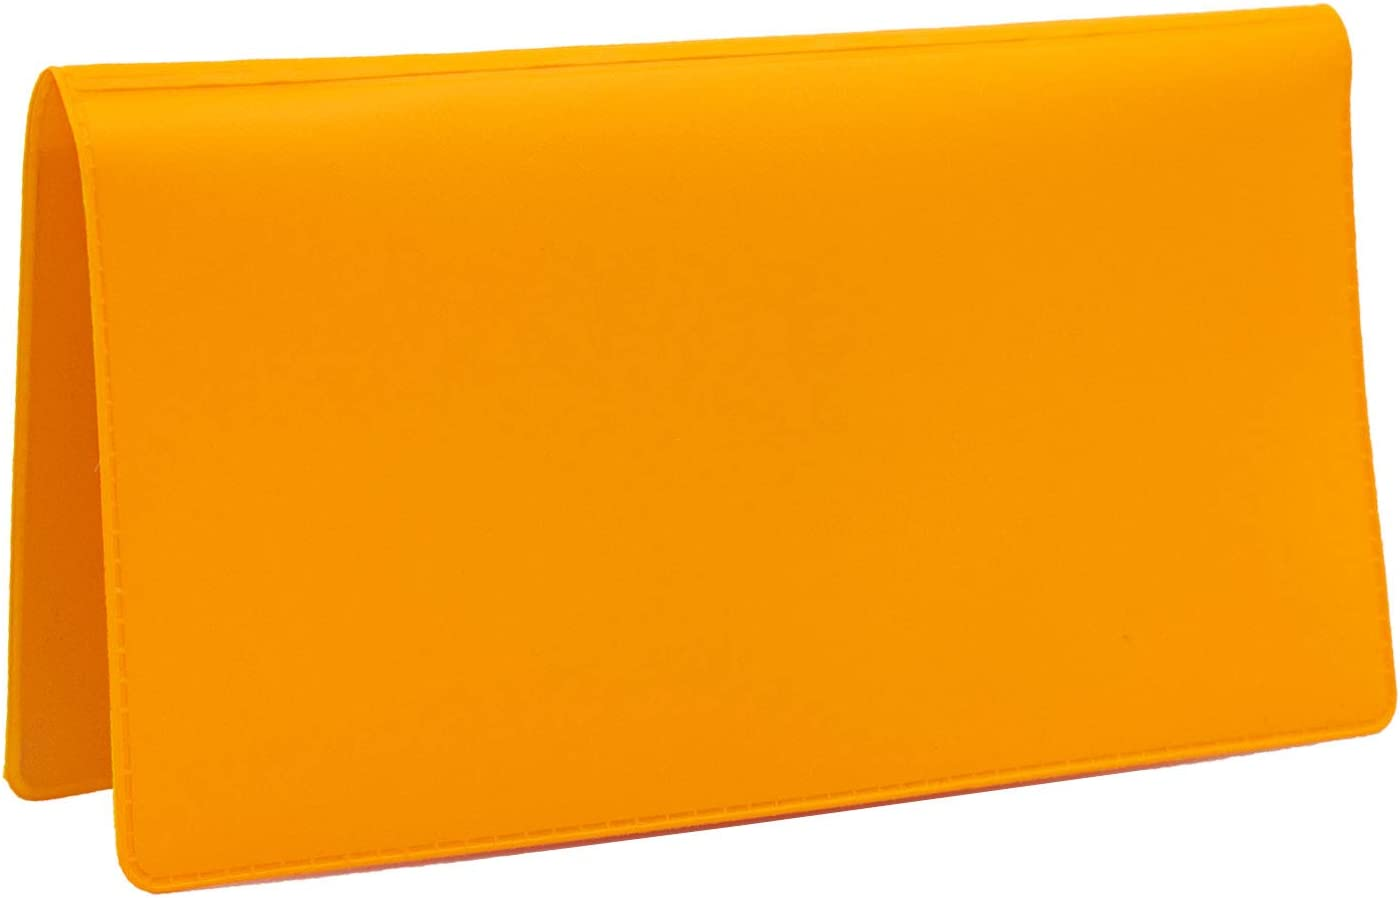 Sunburst Orange Vinyl Checkbook Cover, Top Tear Personal Vinyl Checkbook Cover